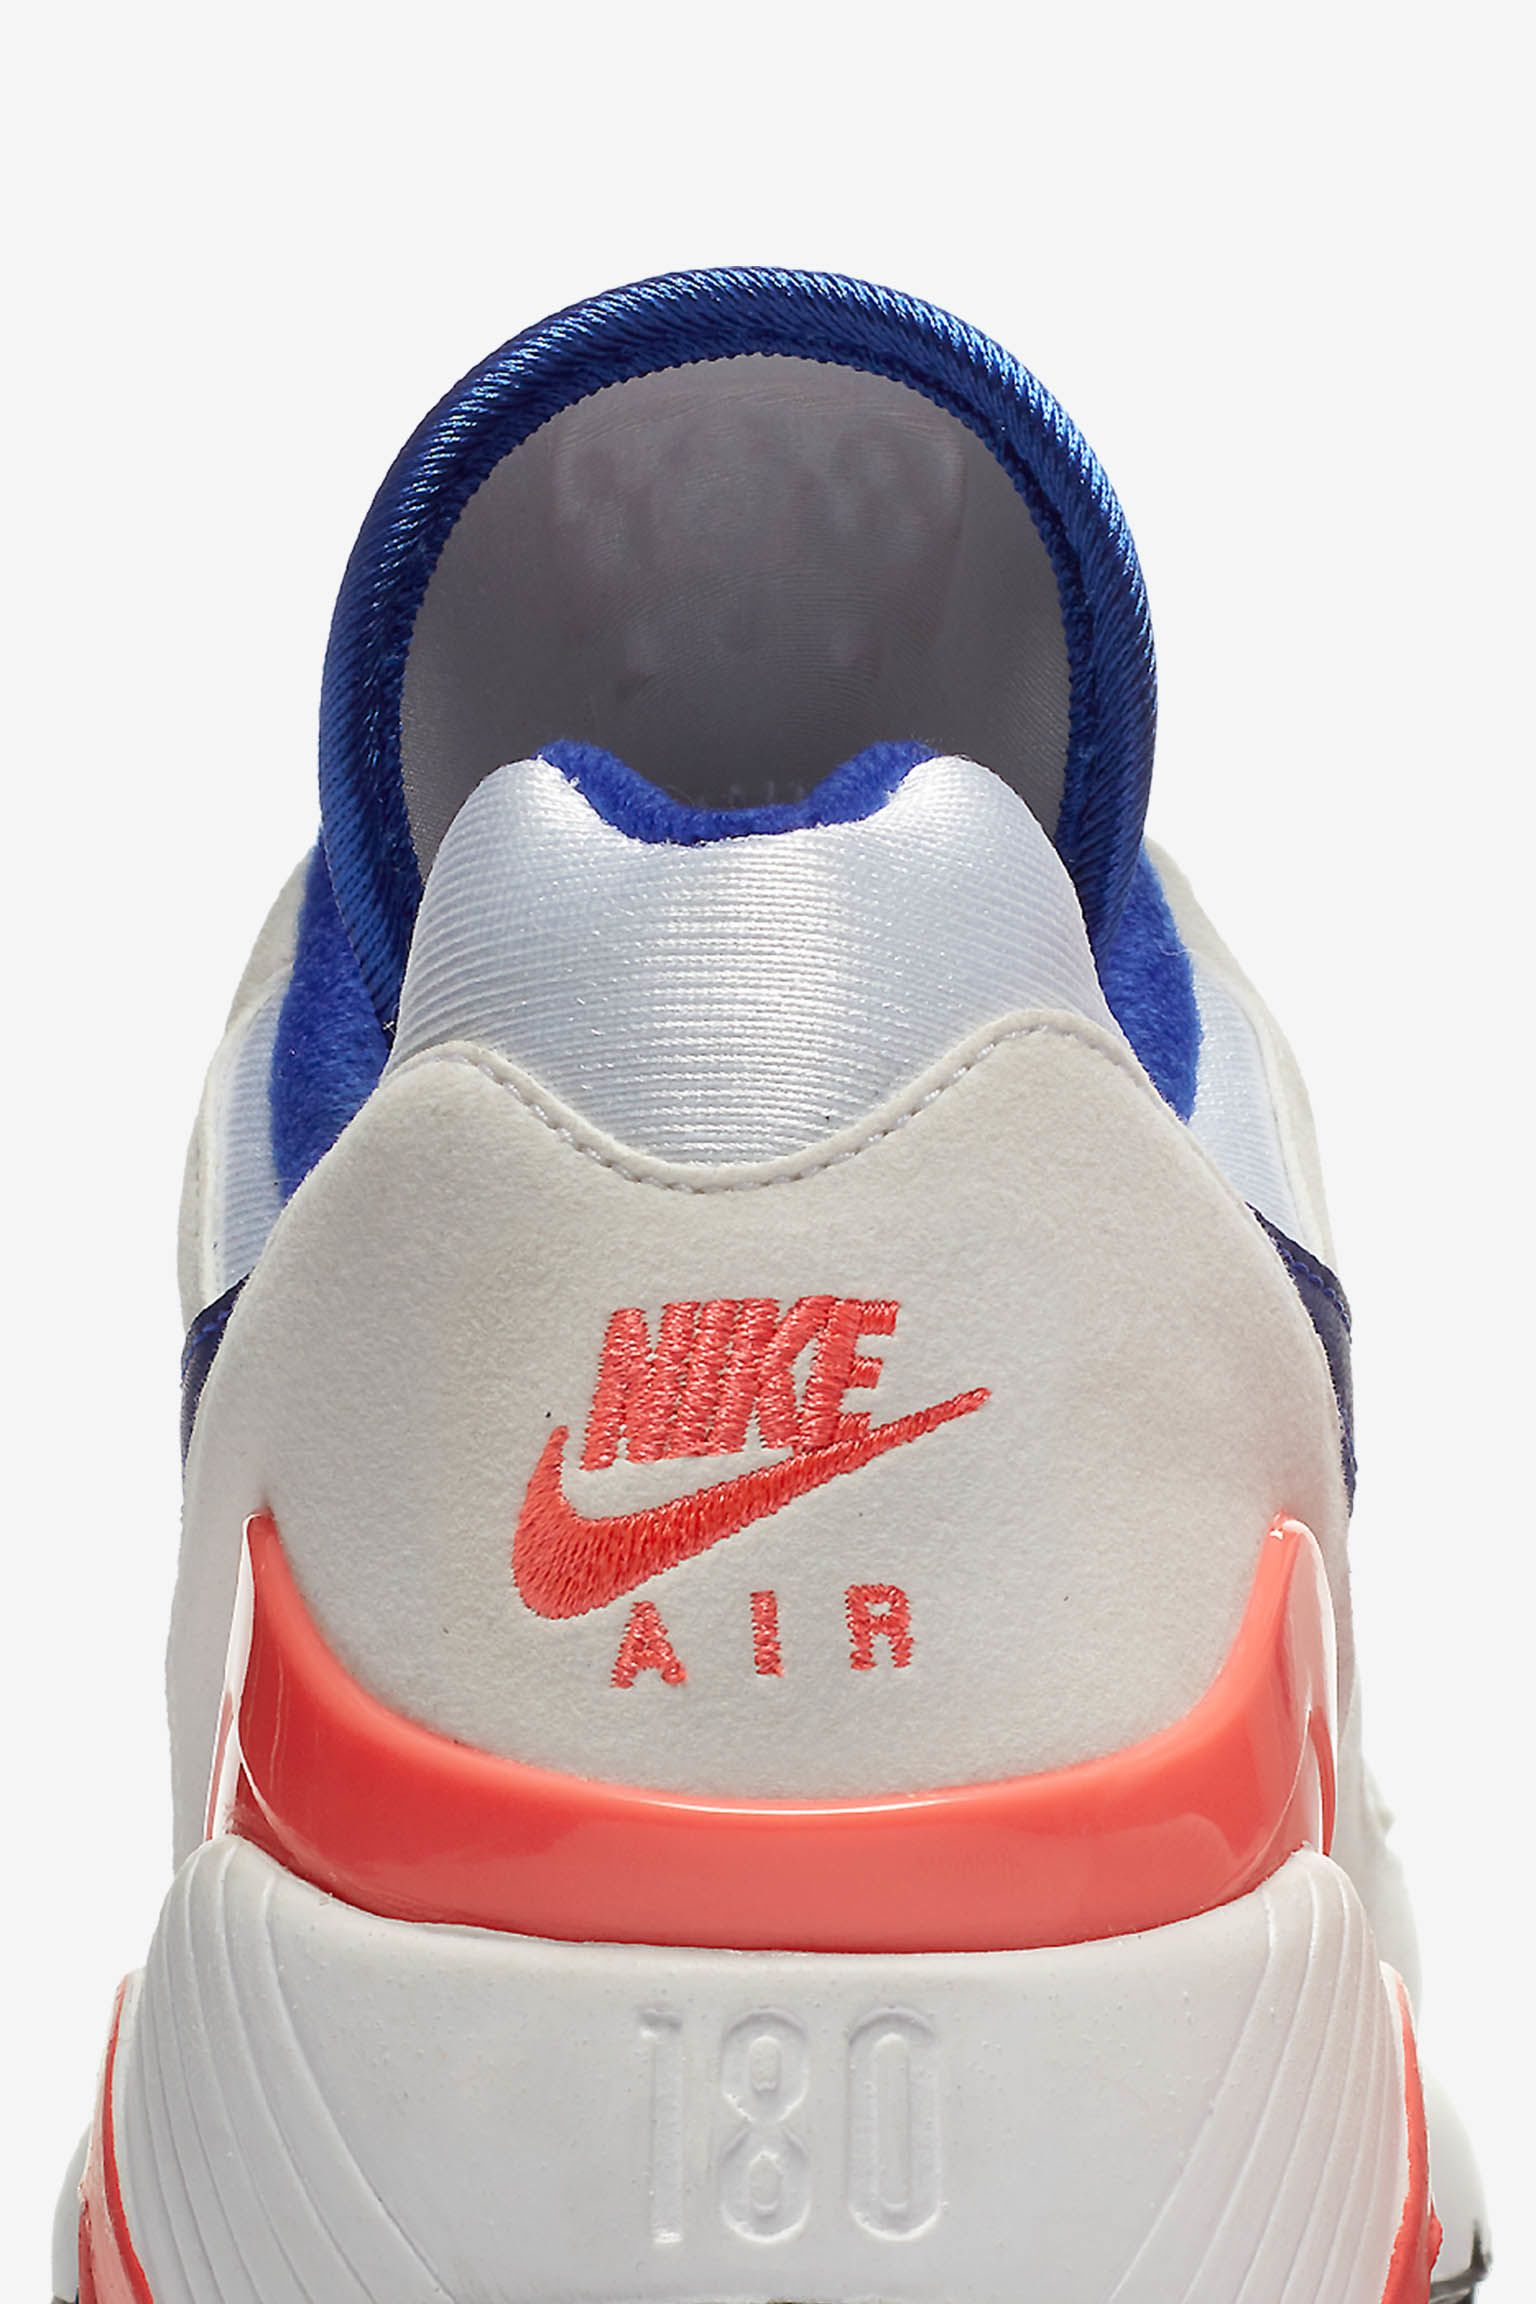 Air Max 180 'White & Ultramarine & Solar Red' Release Date. Nike SNKRS